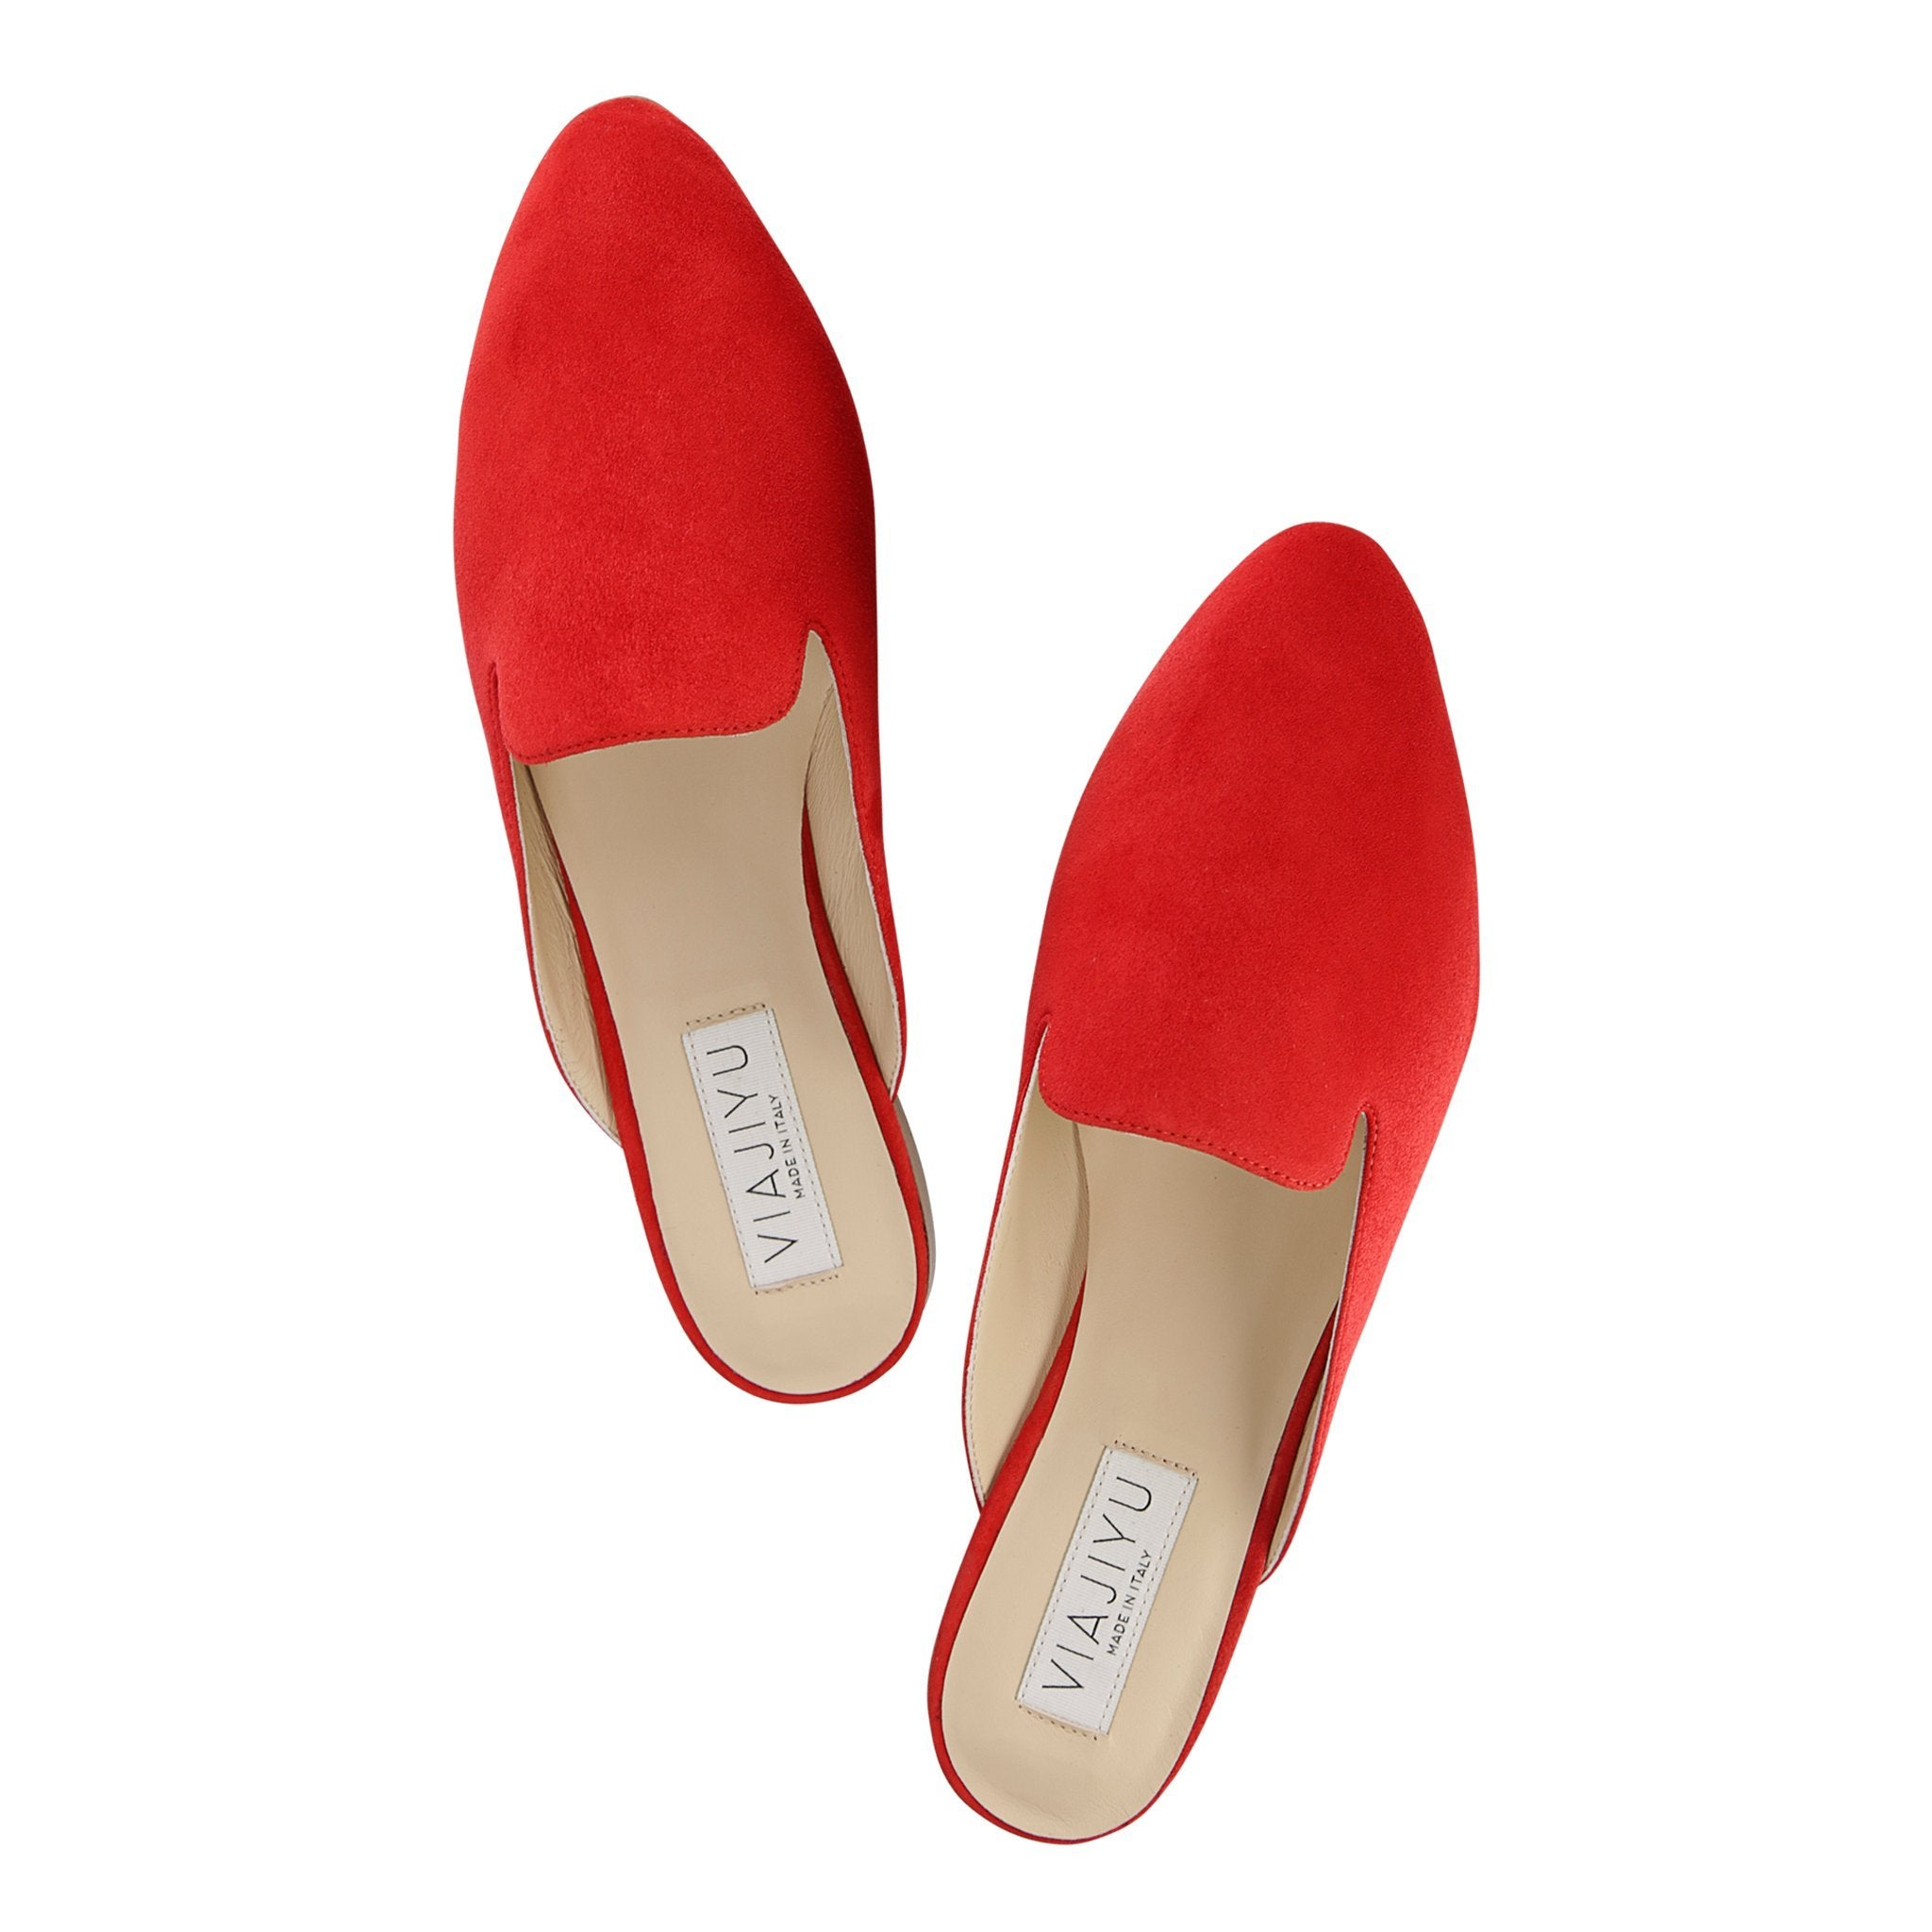 ISEO - Velukid Rosso, VIAJIYU - Women's Hand Made Sustainable Luxury Shoes. Made in Italy. Made to Order.